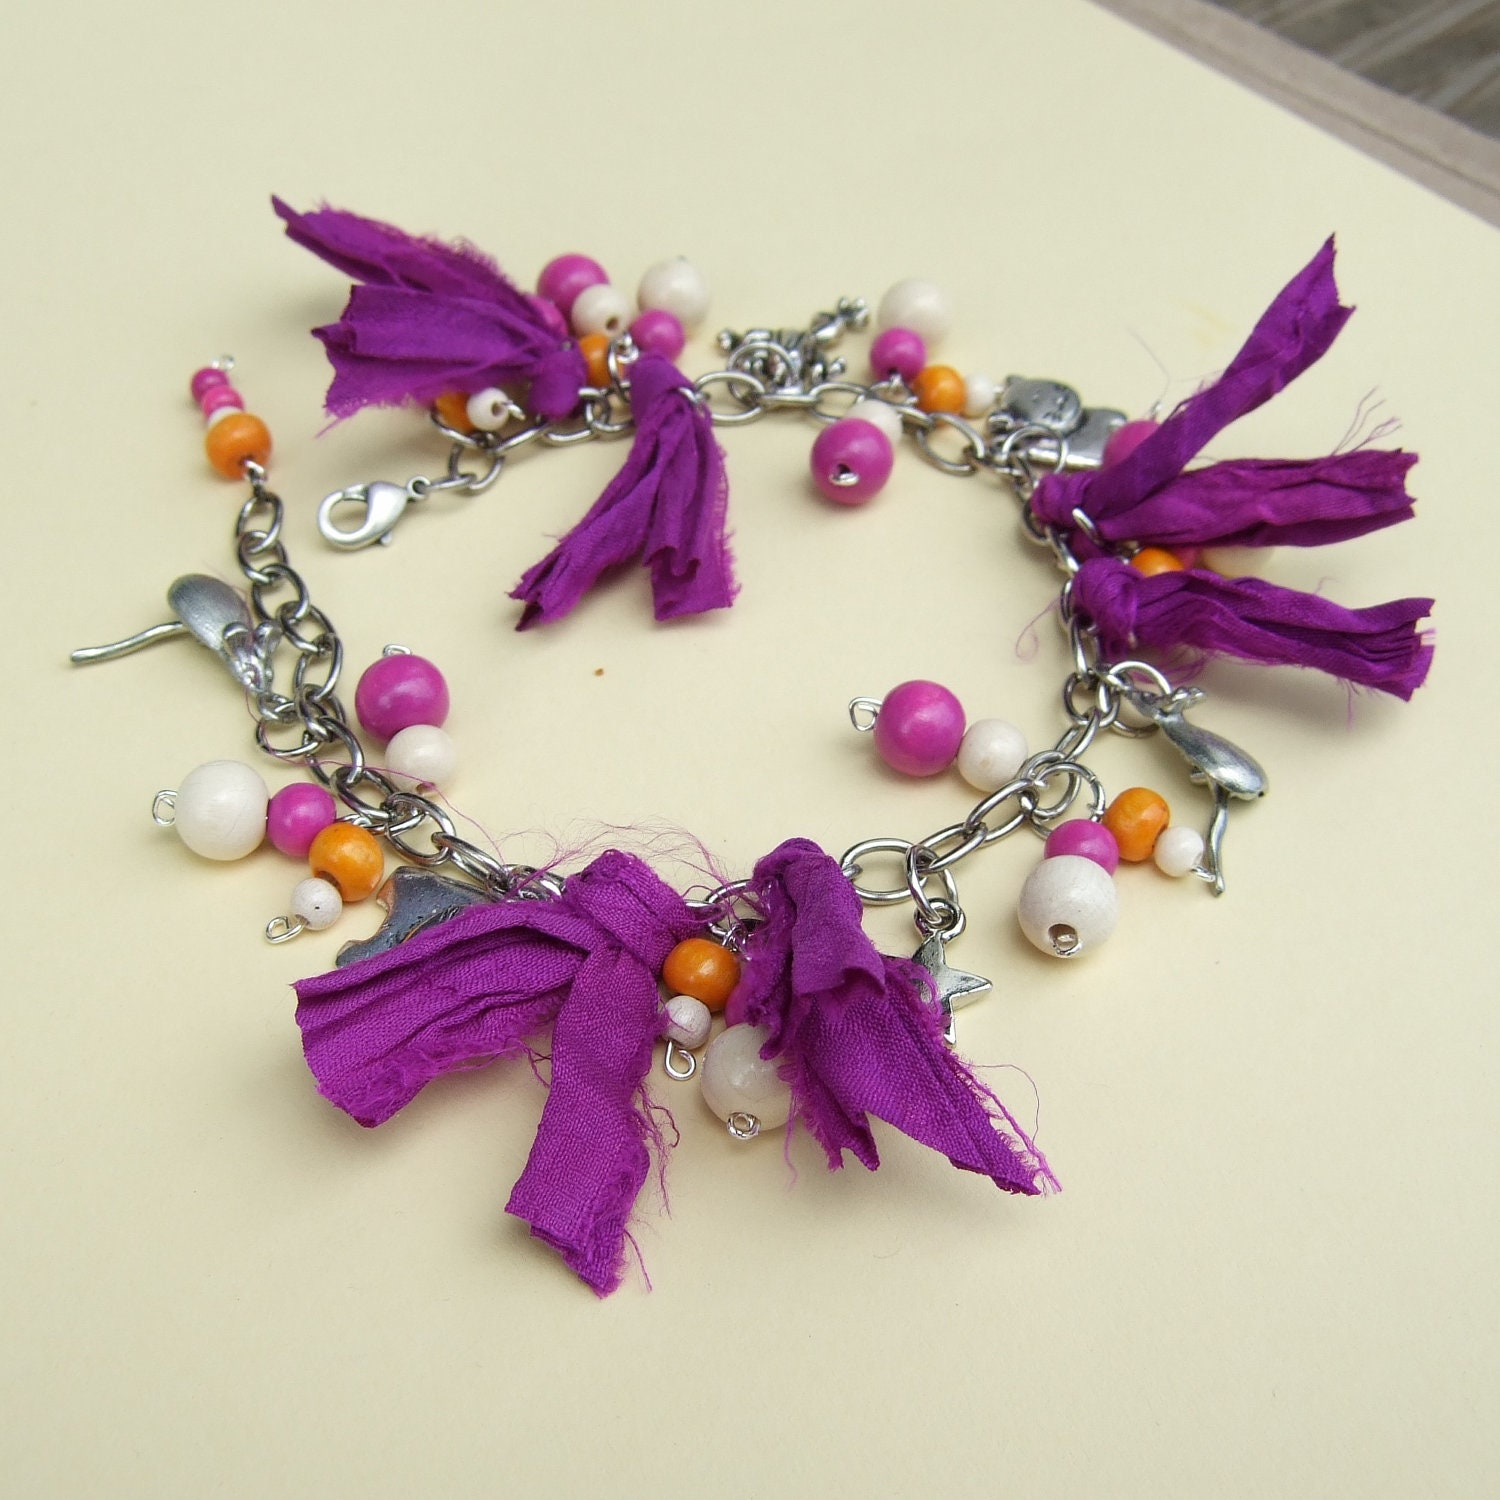 Purple sari ribbon, white, orange and deep pink wood beads, charms and chain bracelet